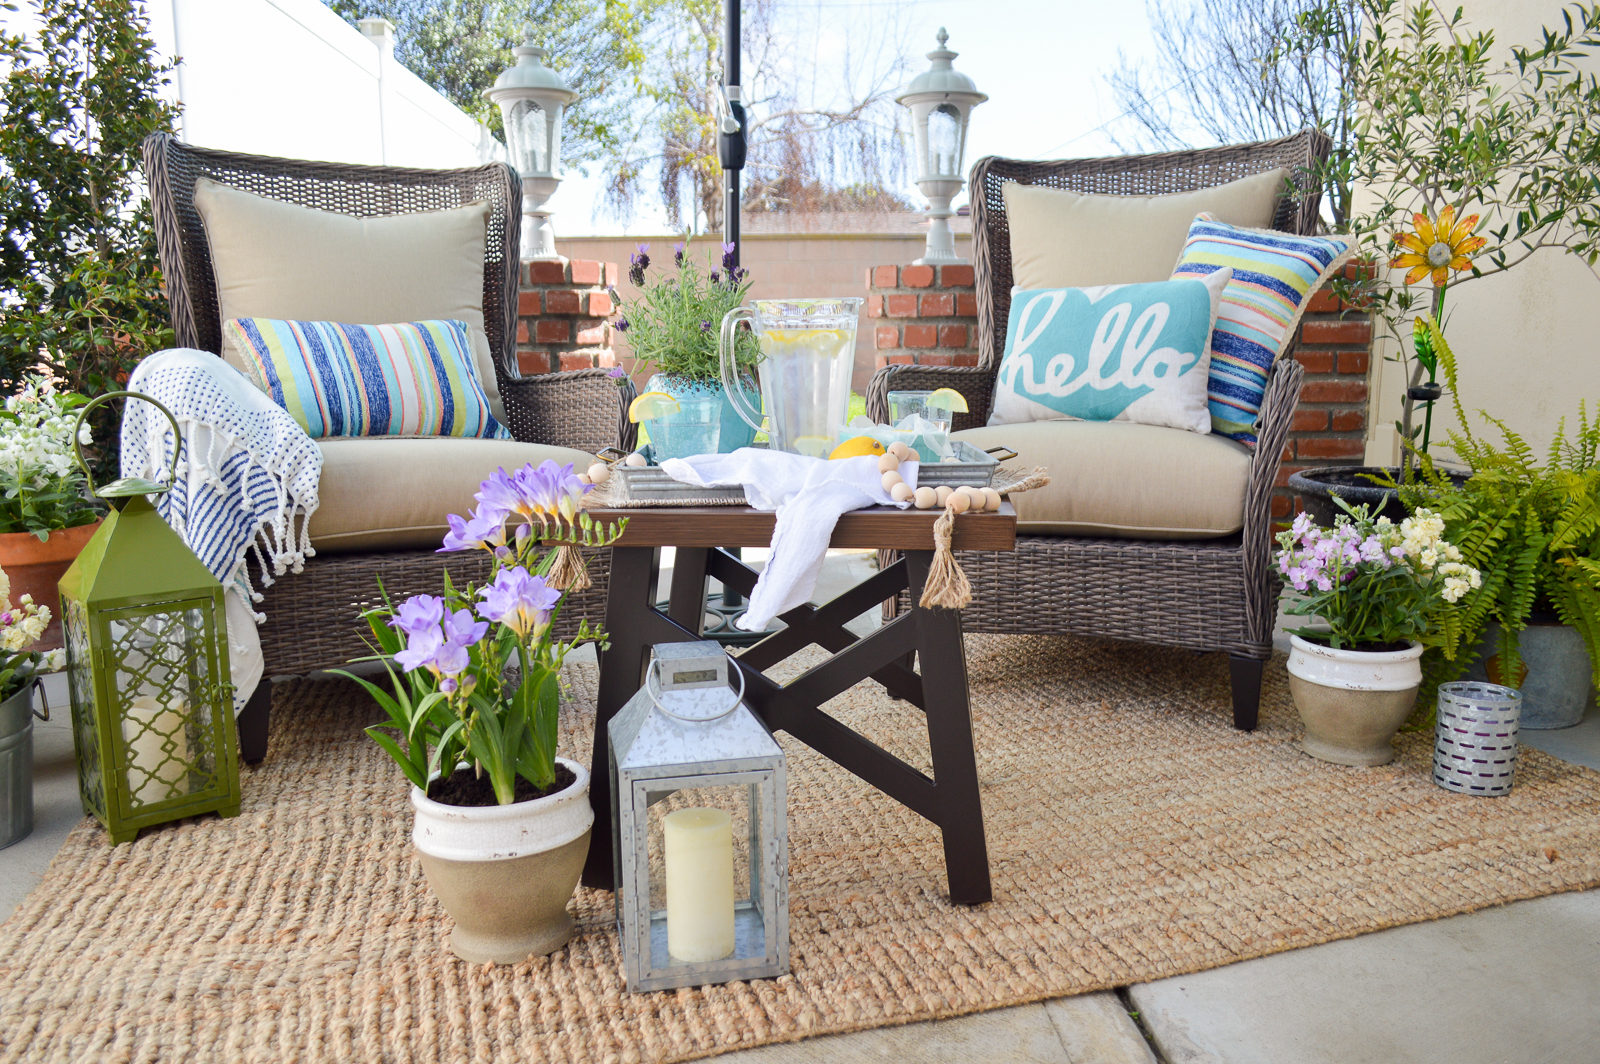 Outdoor Entertaining Furniture and Decorating Ideas - Fox Hollow Cottage